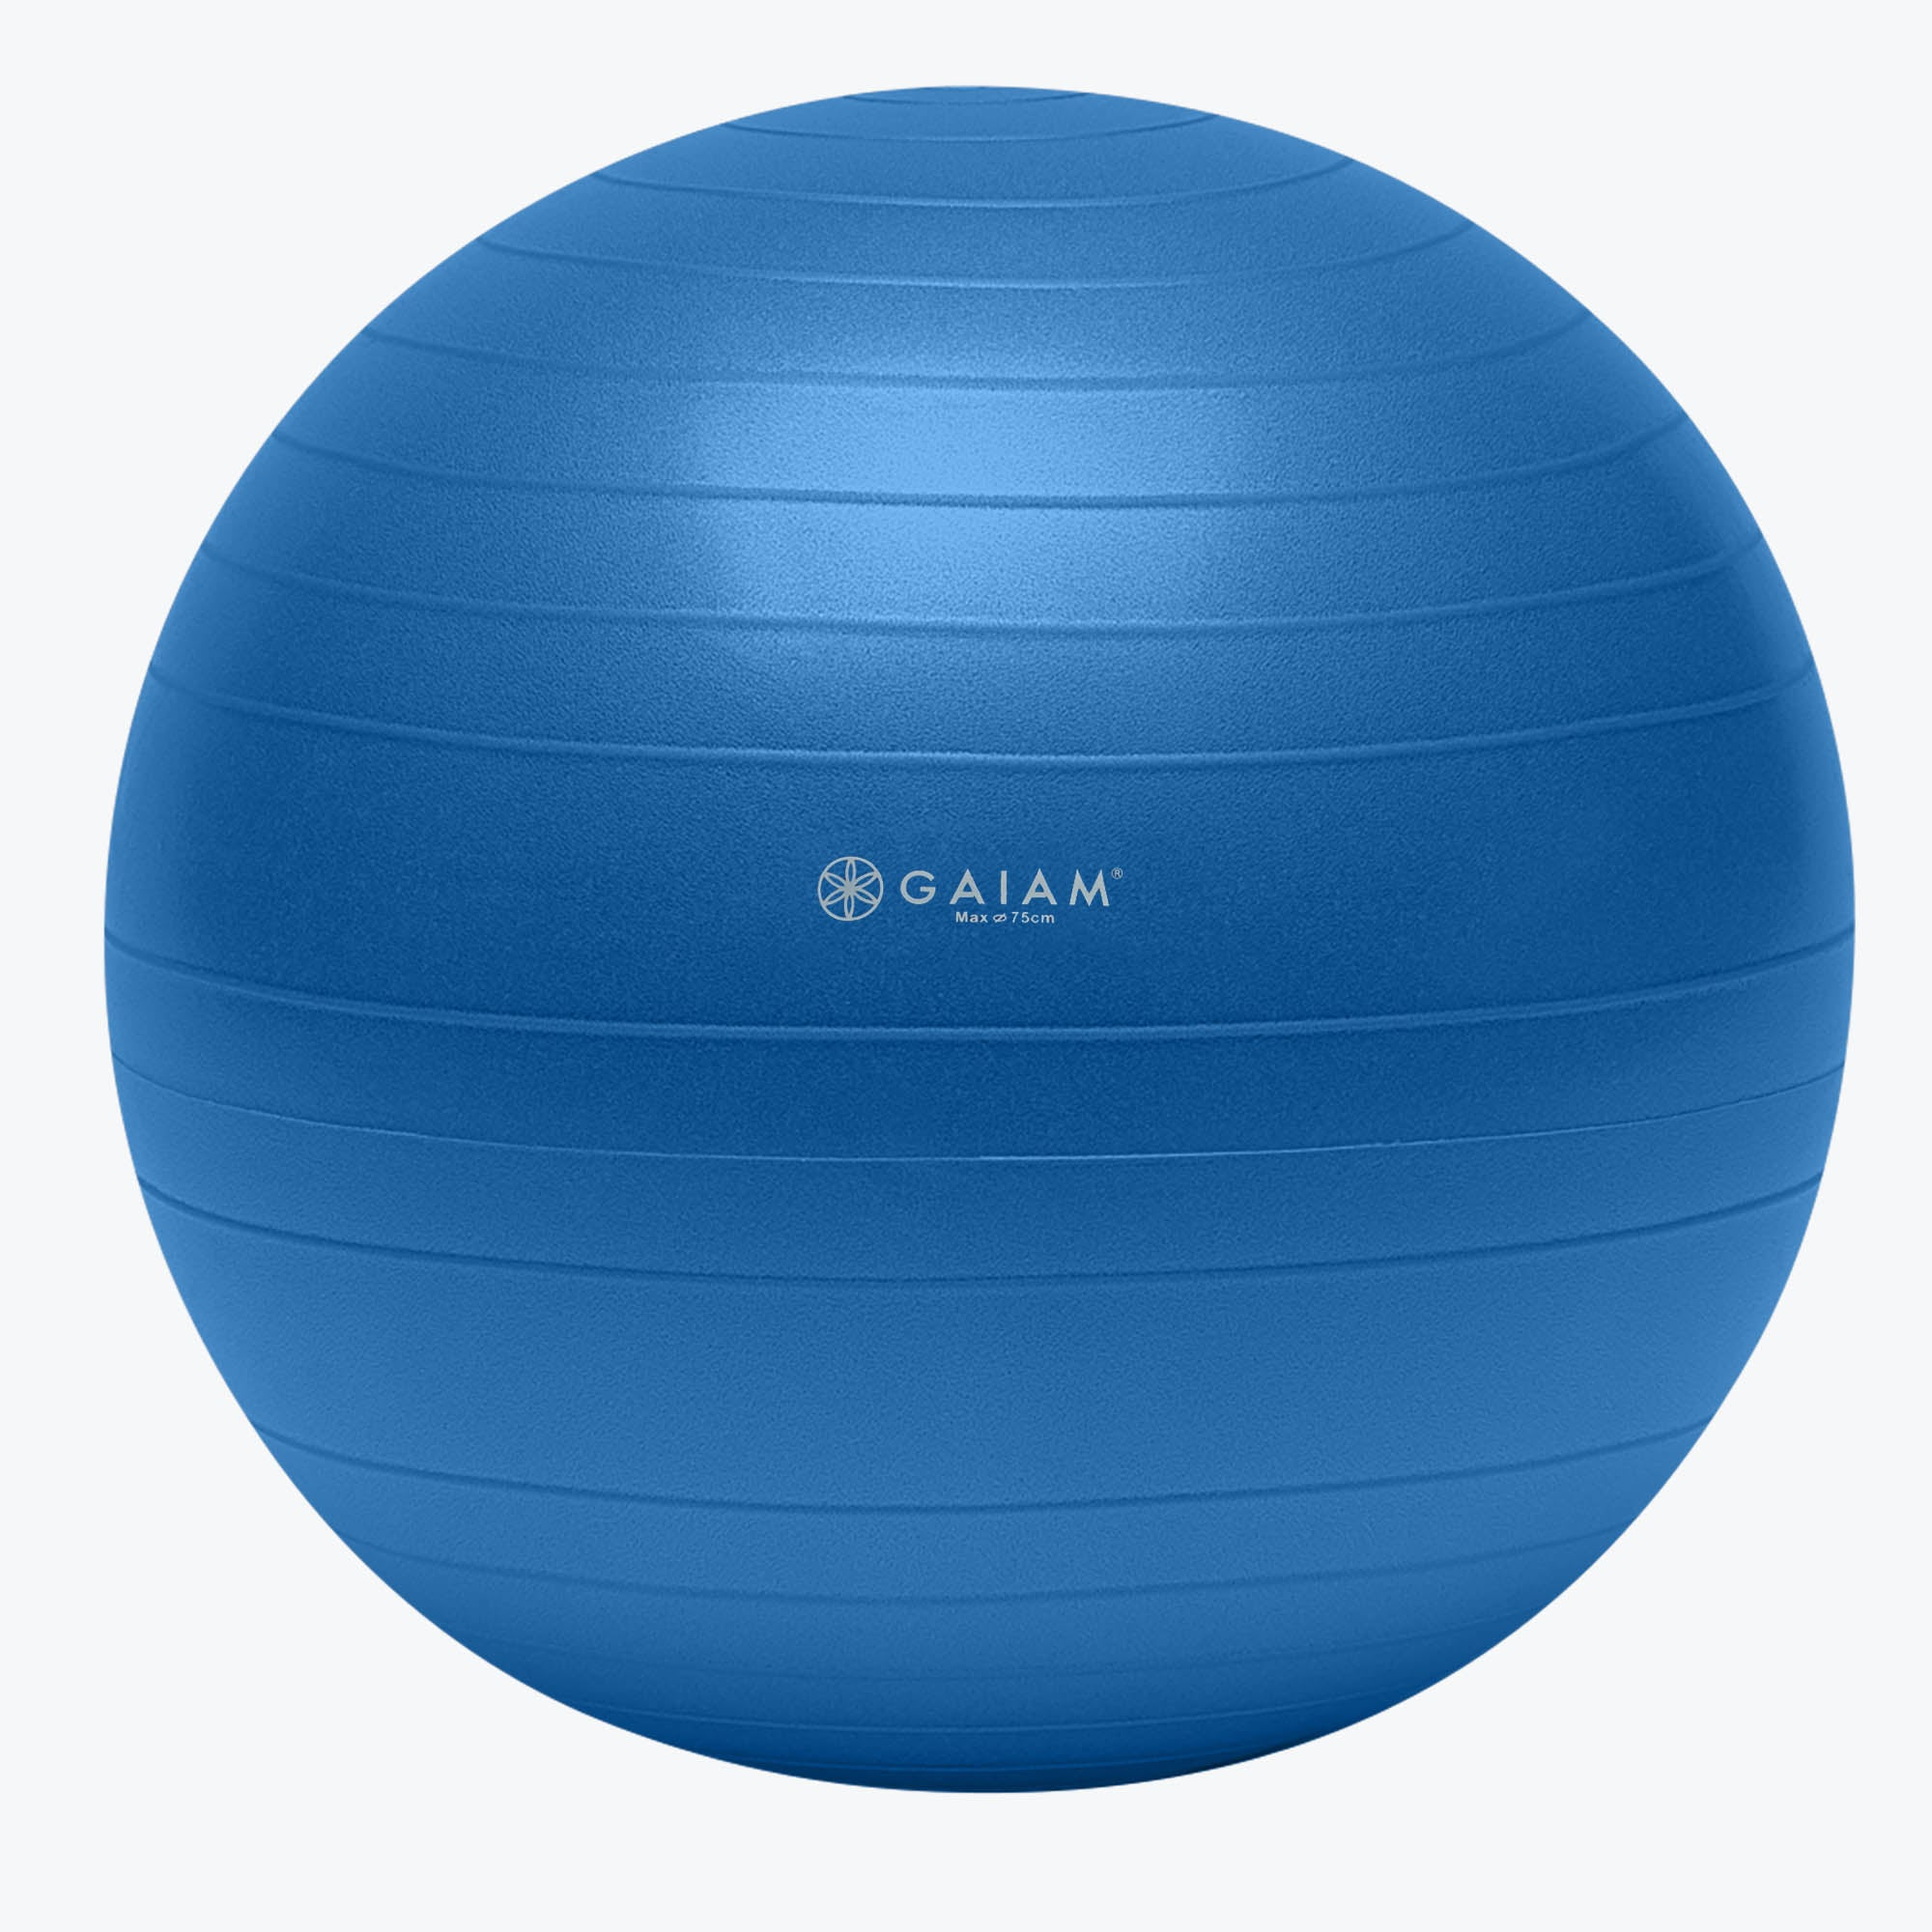 Gaiam Total Body Balance Ball® Kit